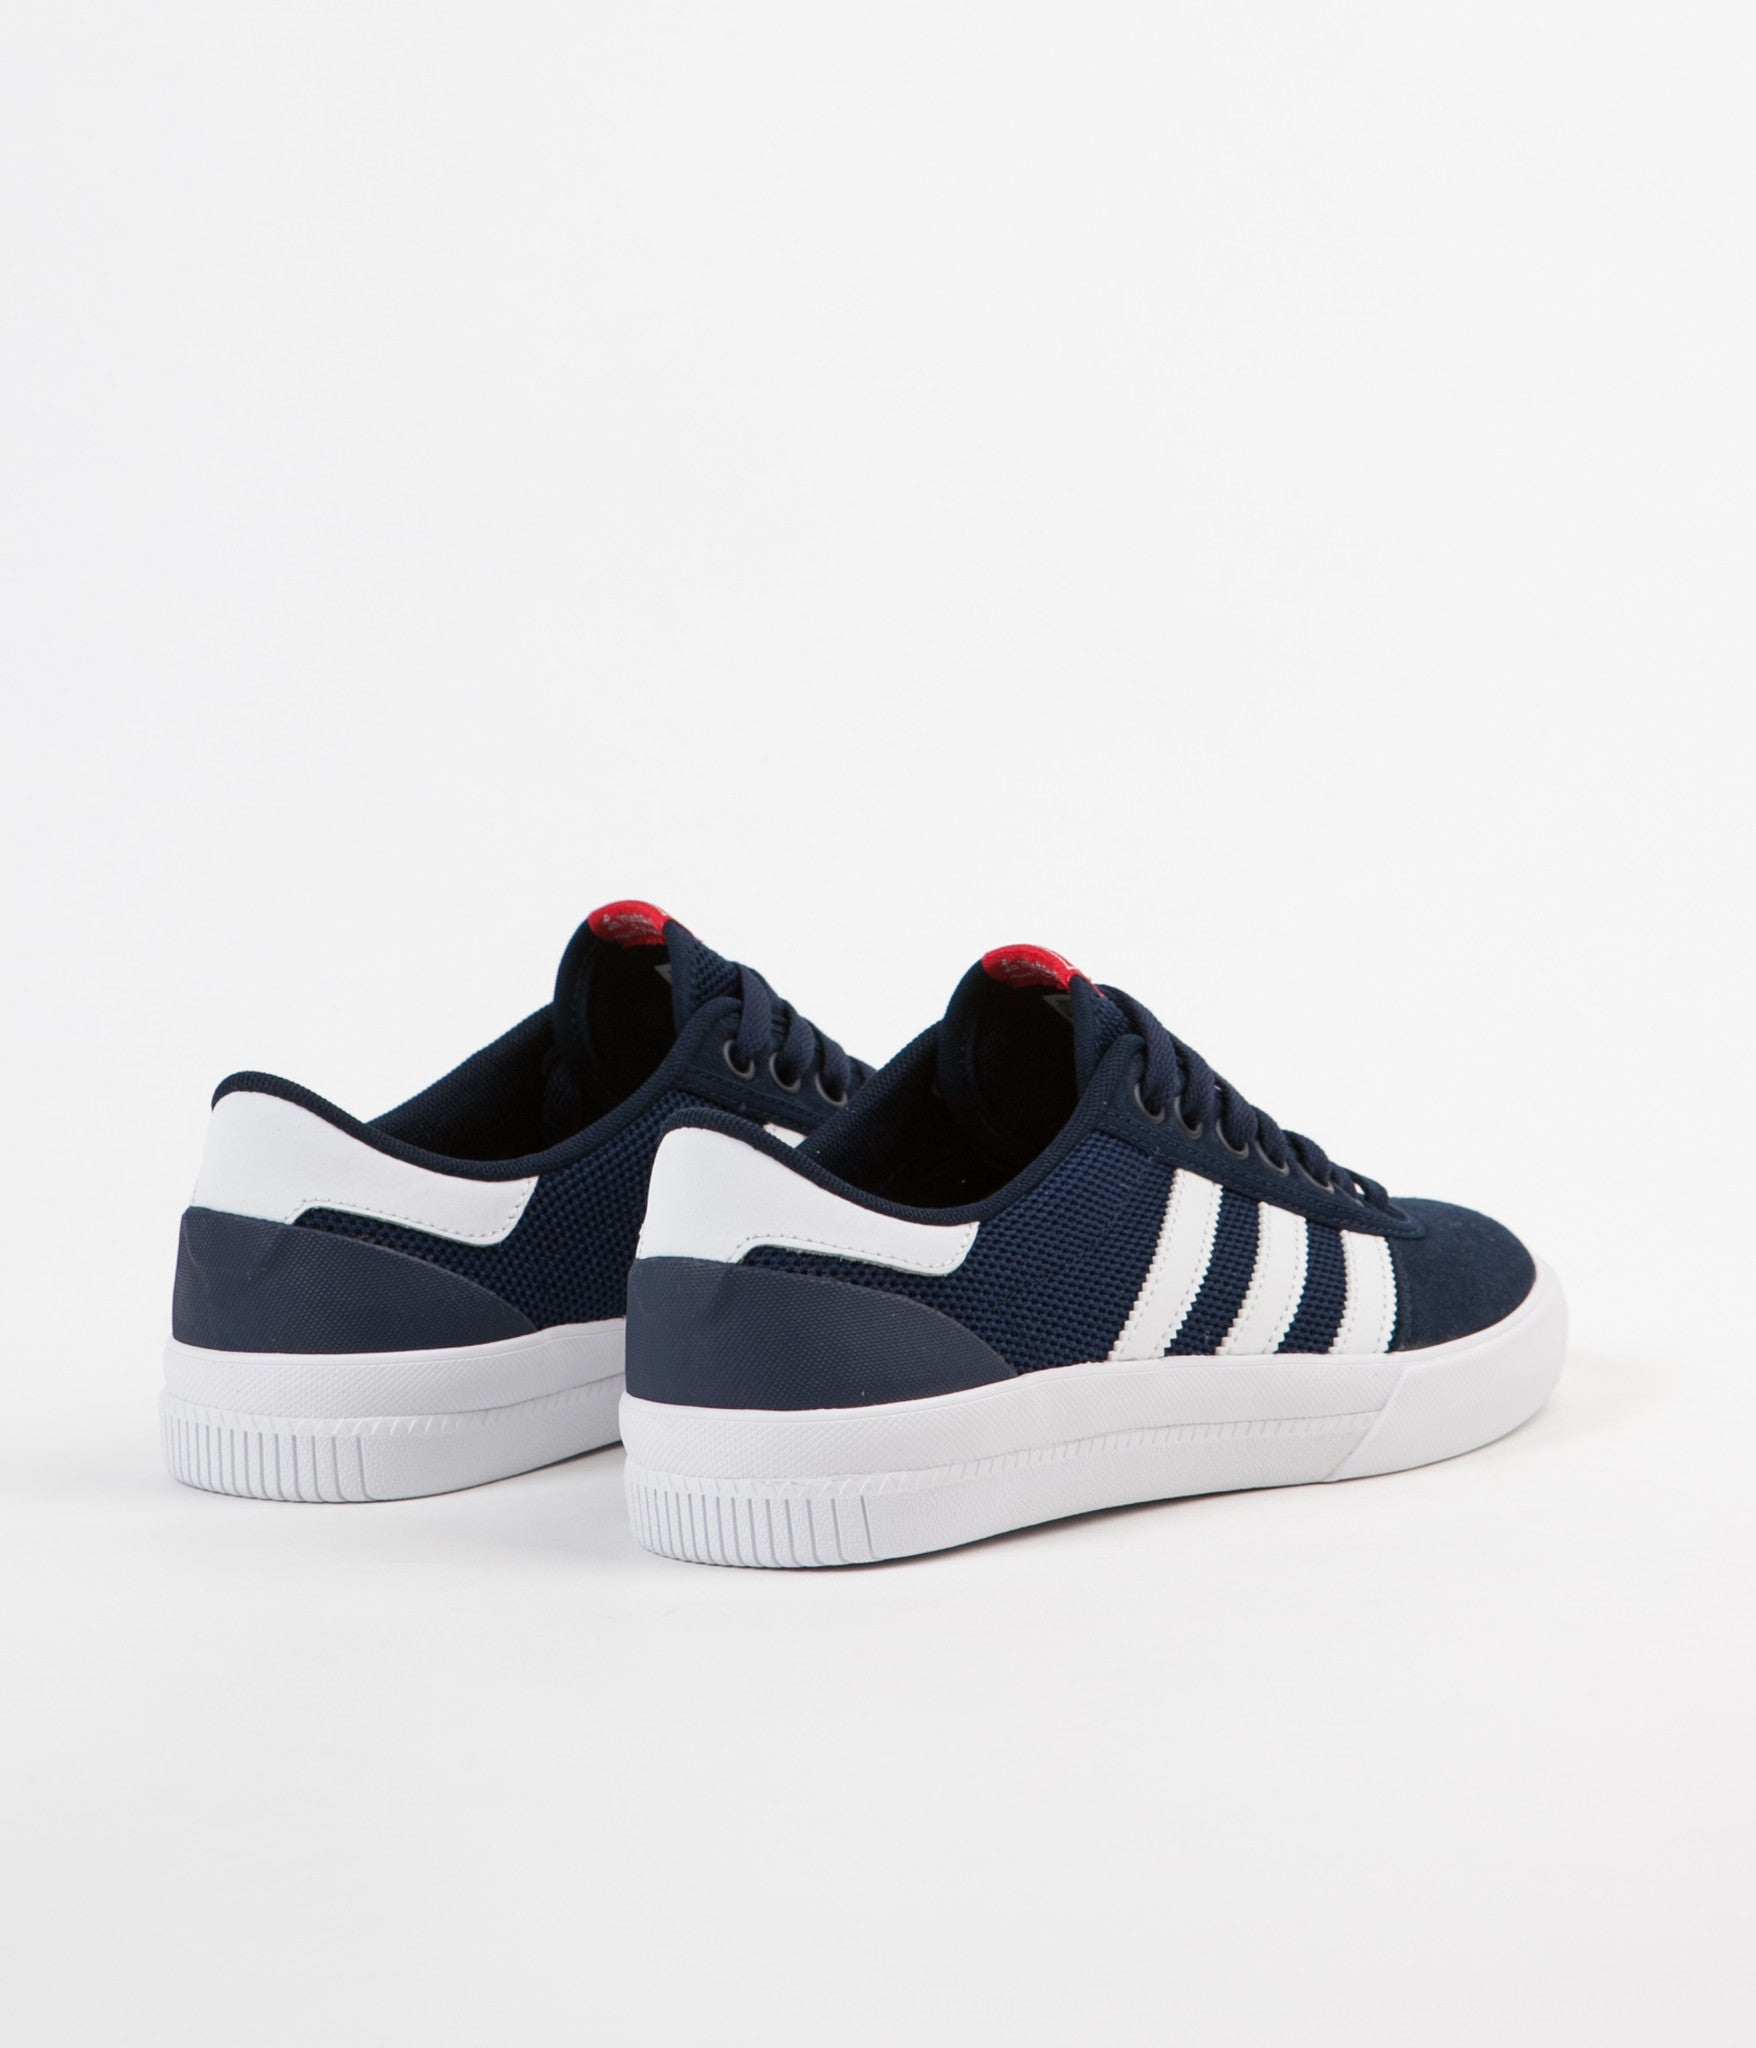 Adidas Lucas Premiere Adv Shoes - Collegiate Navy / White / Scarlet